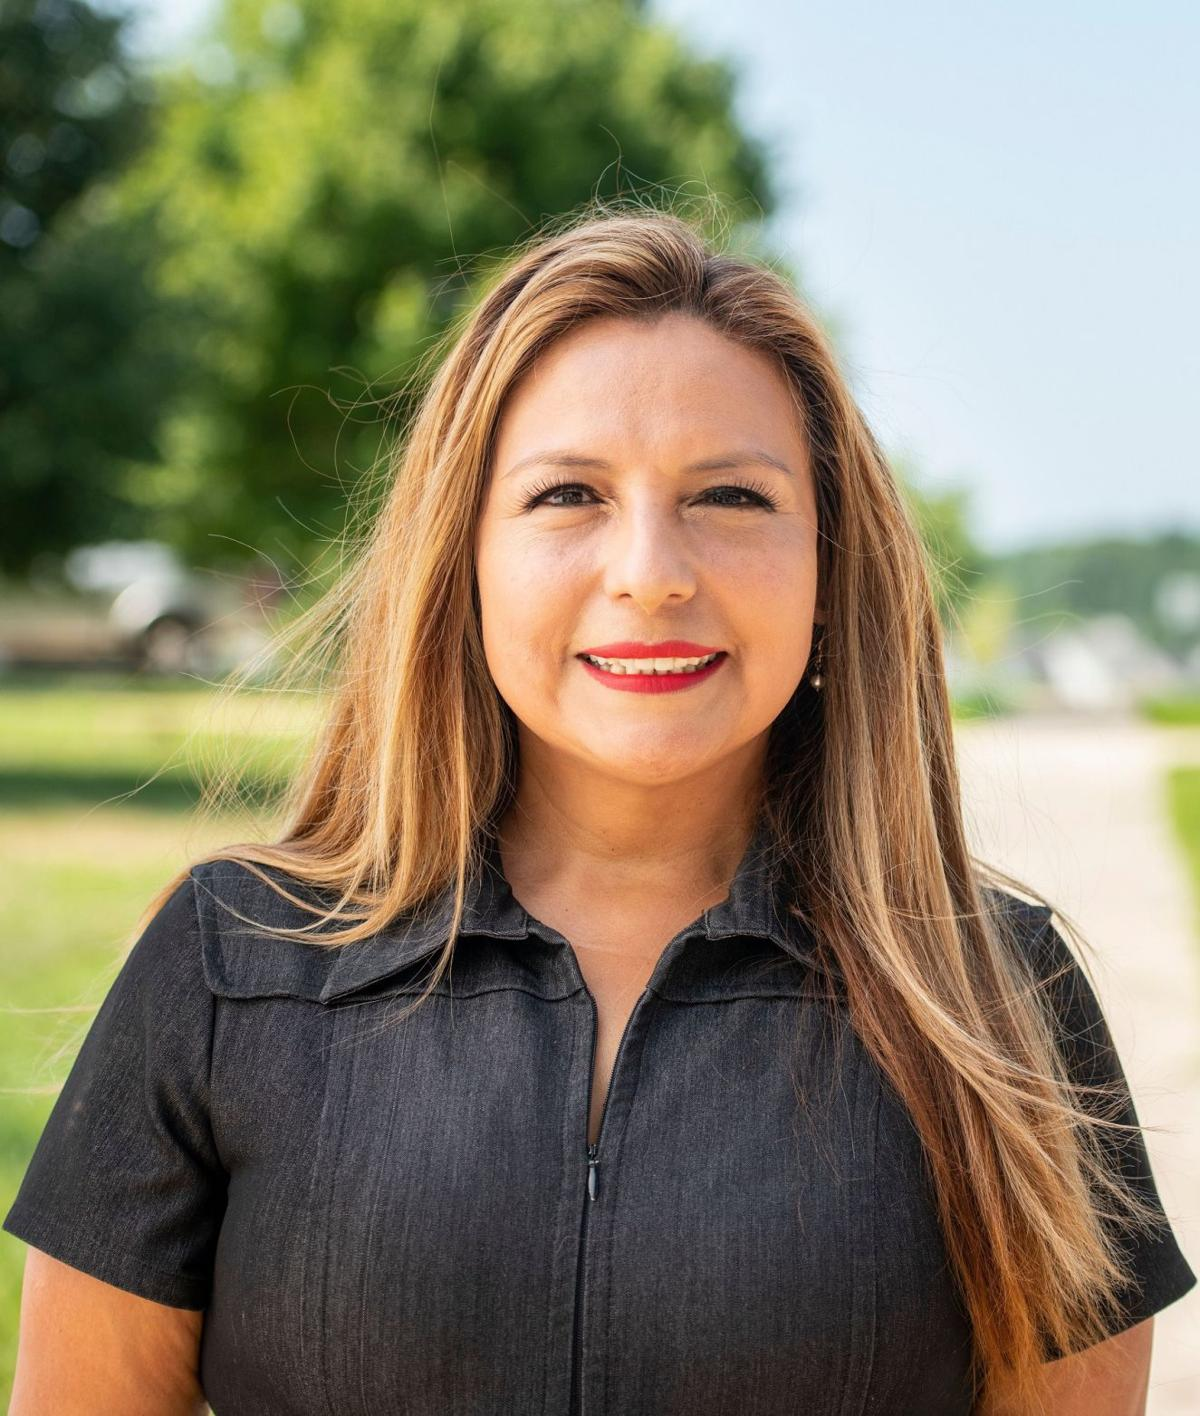 Del. Elizabeth Guzman, D-31st District